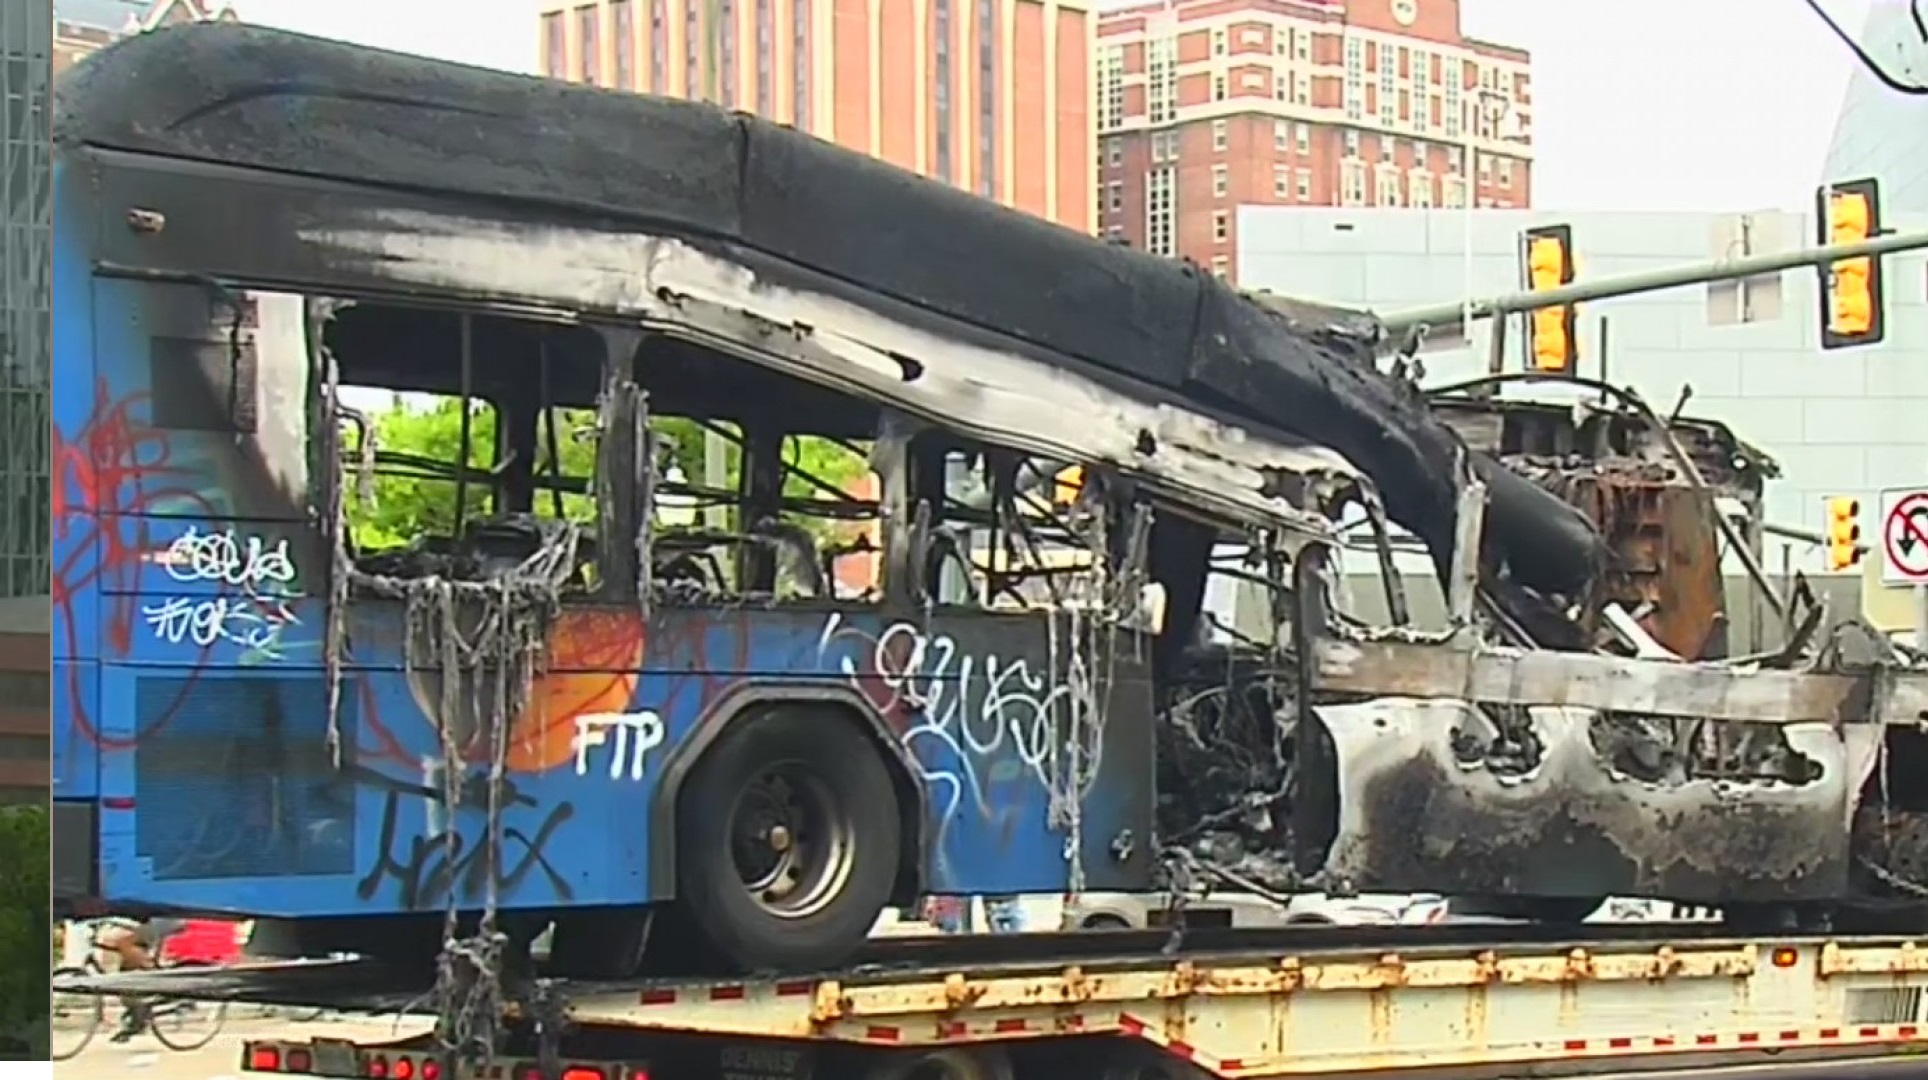 Burnt GRTC Pulse bus on broad street